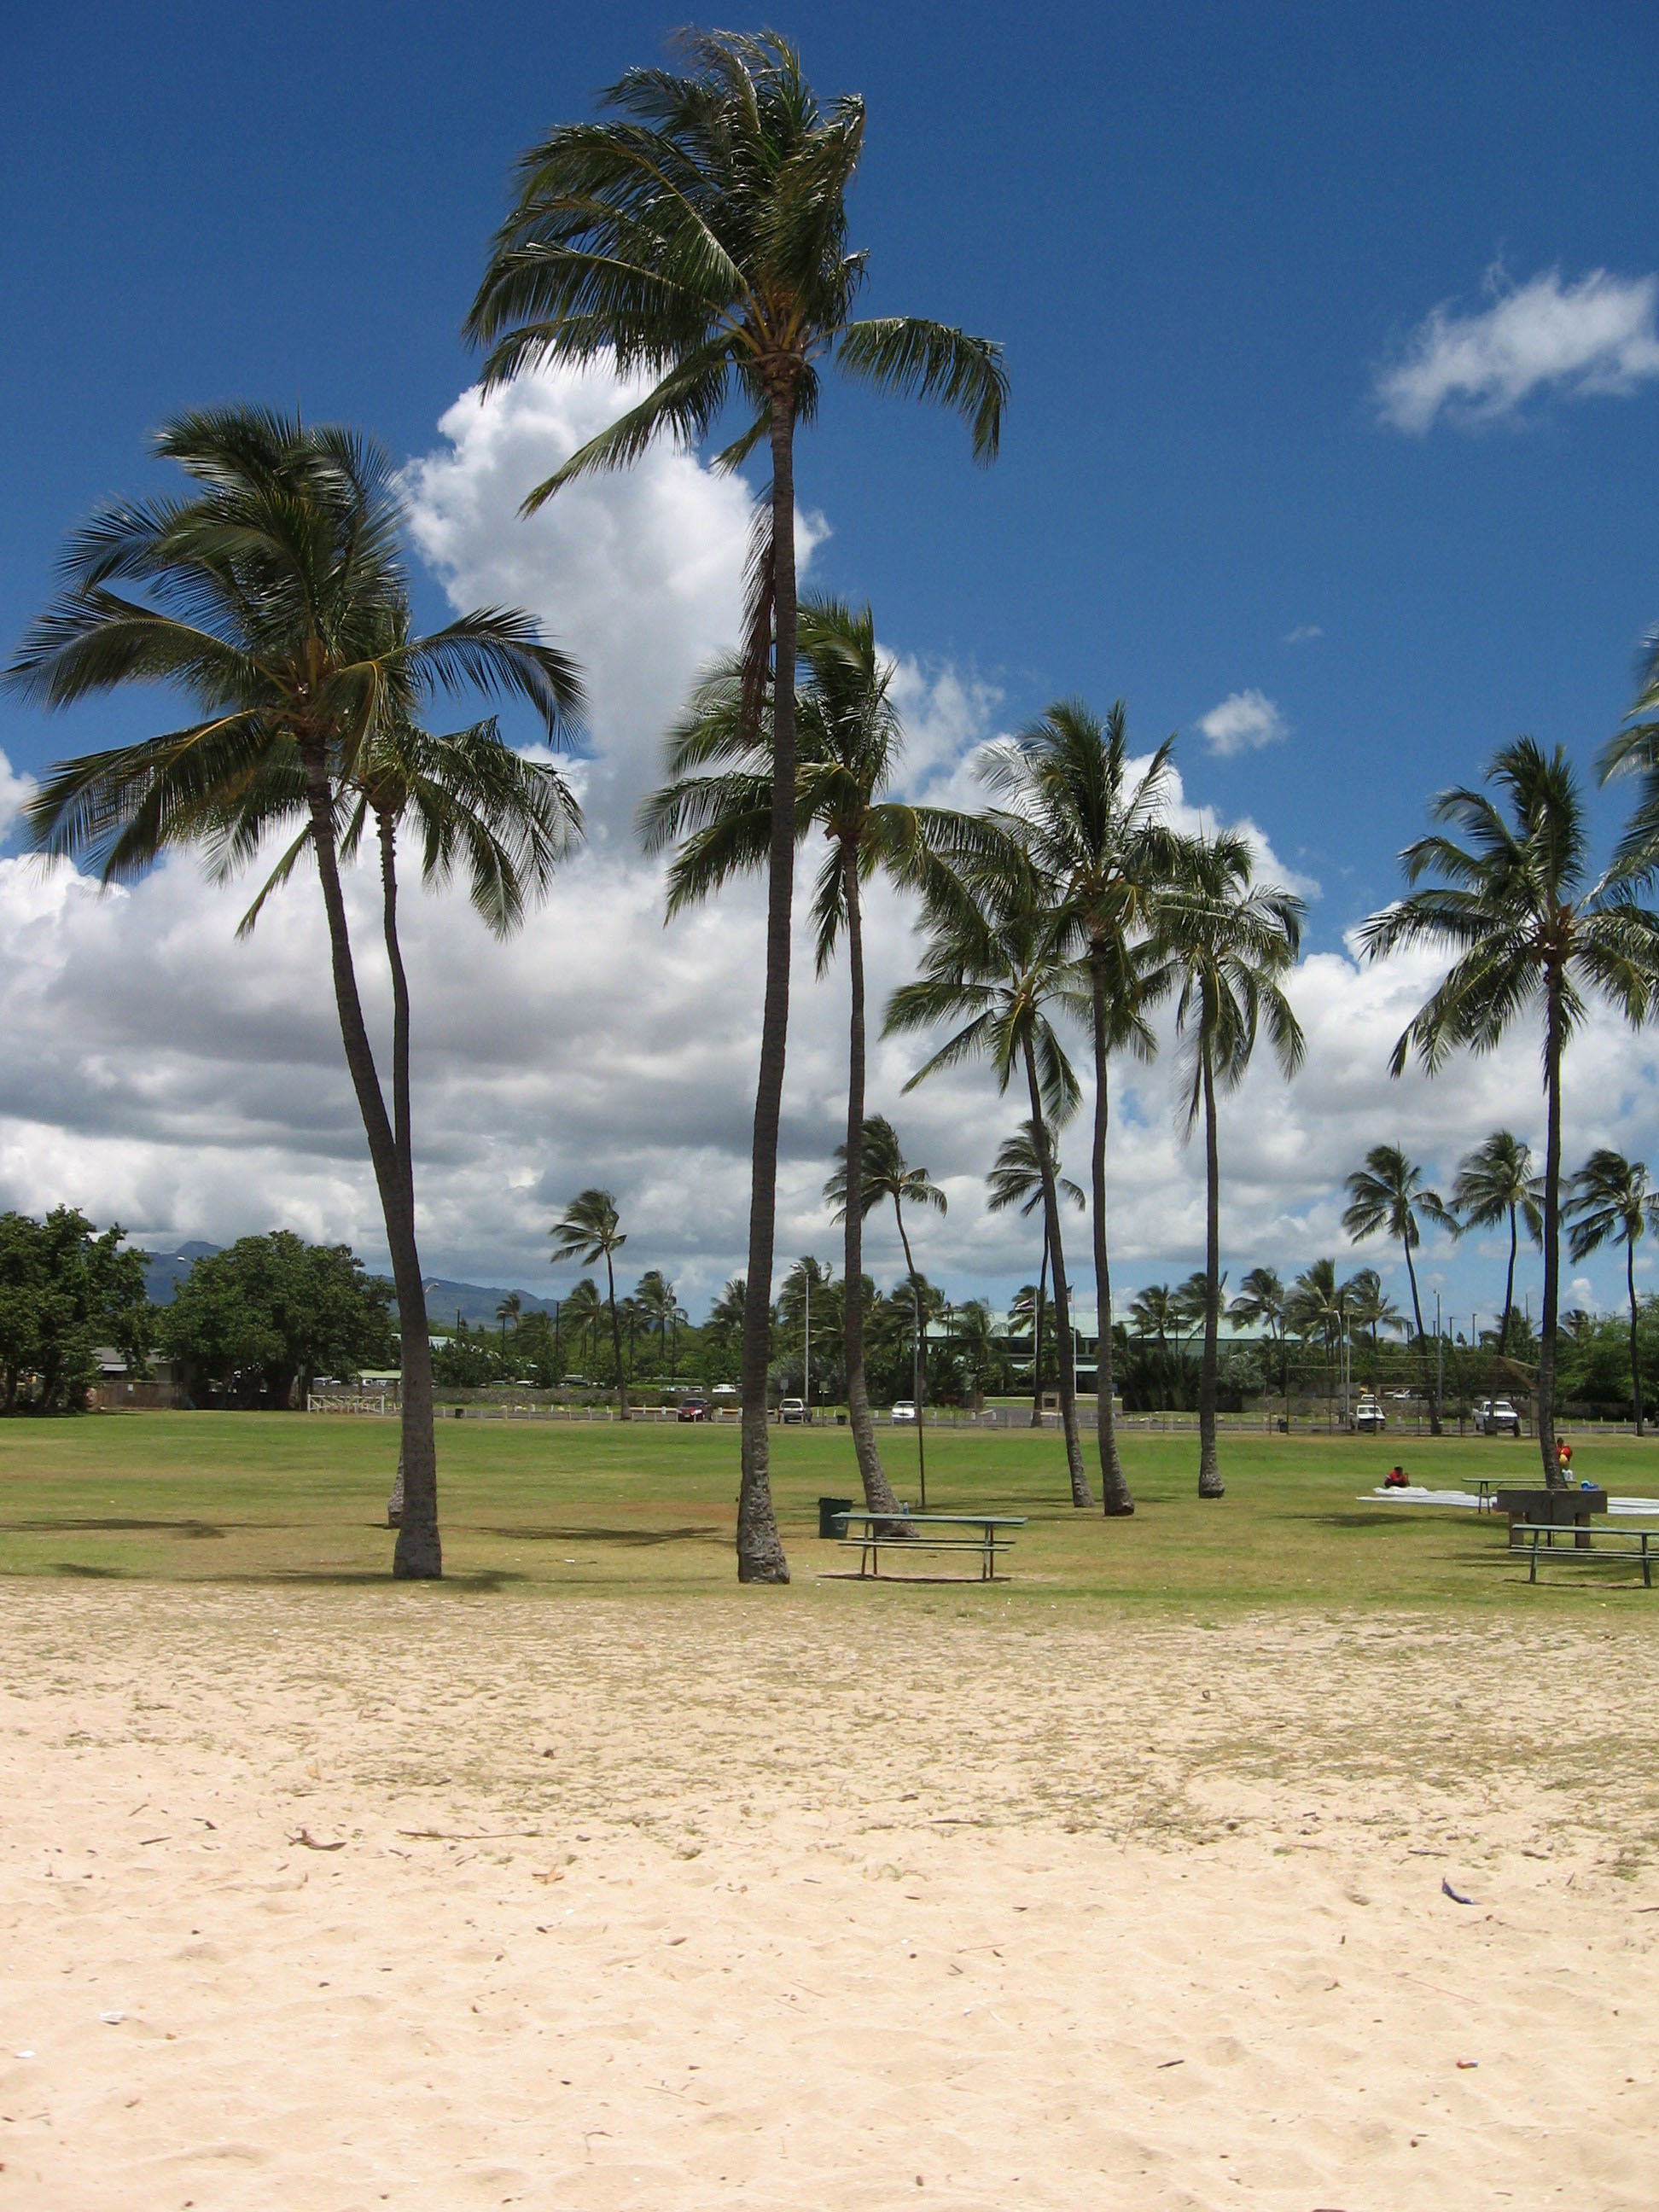 Ewa Beach Landscape With Palm Trees And Sky In Hawaii Photo By Drums600